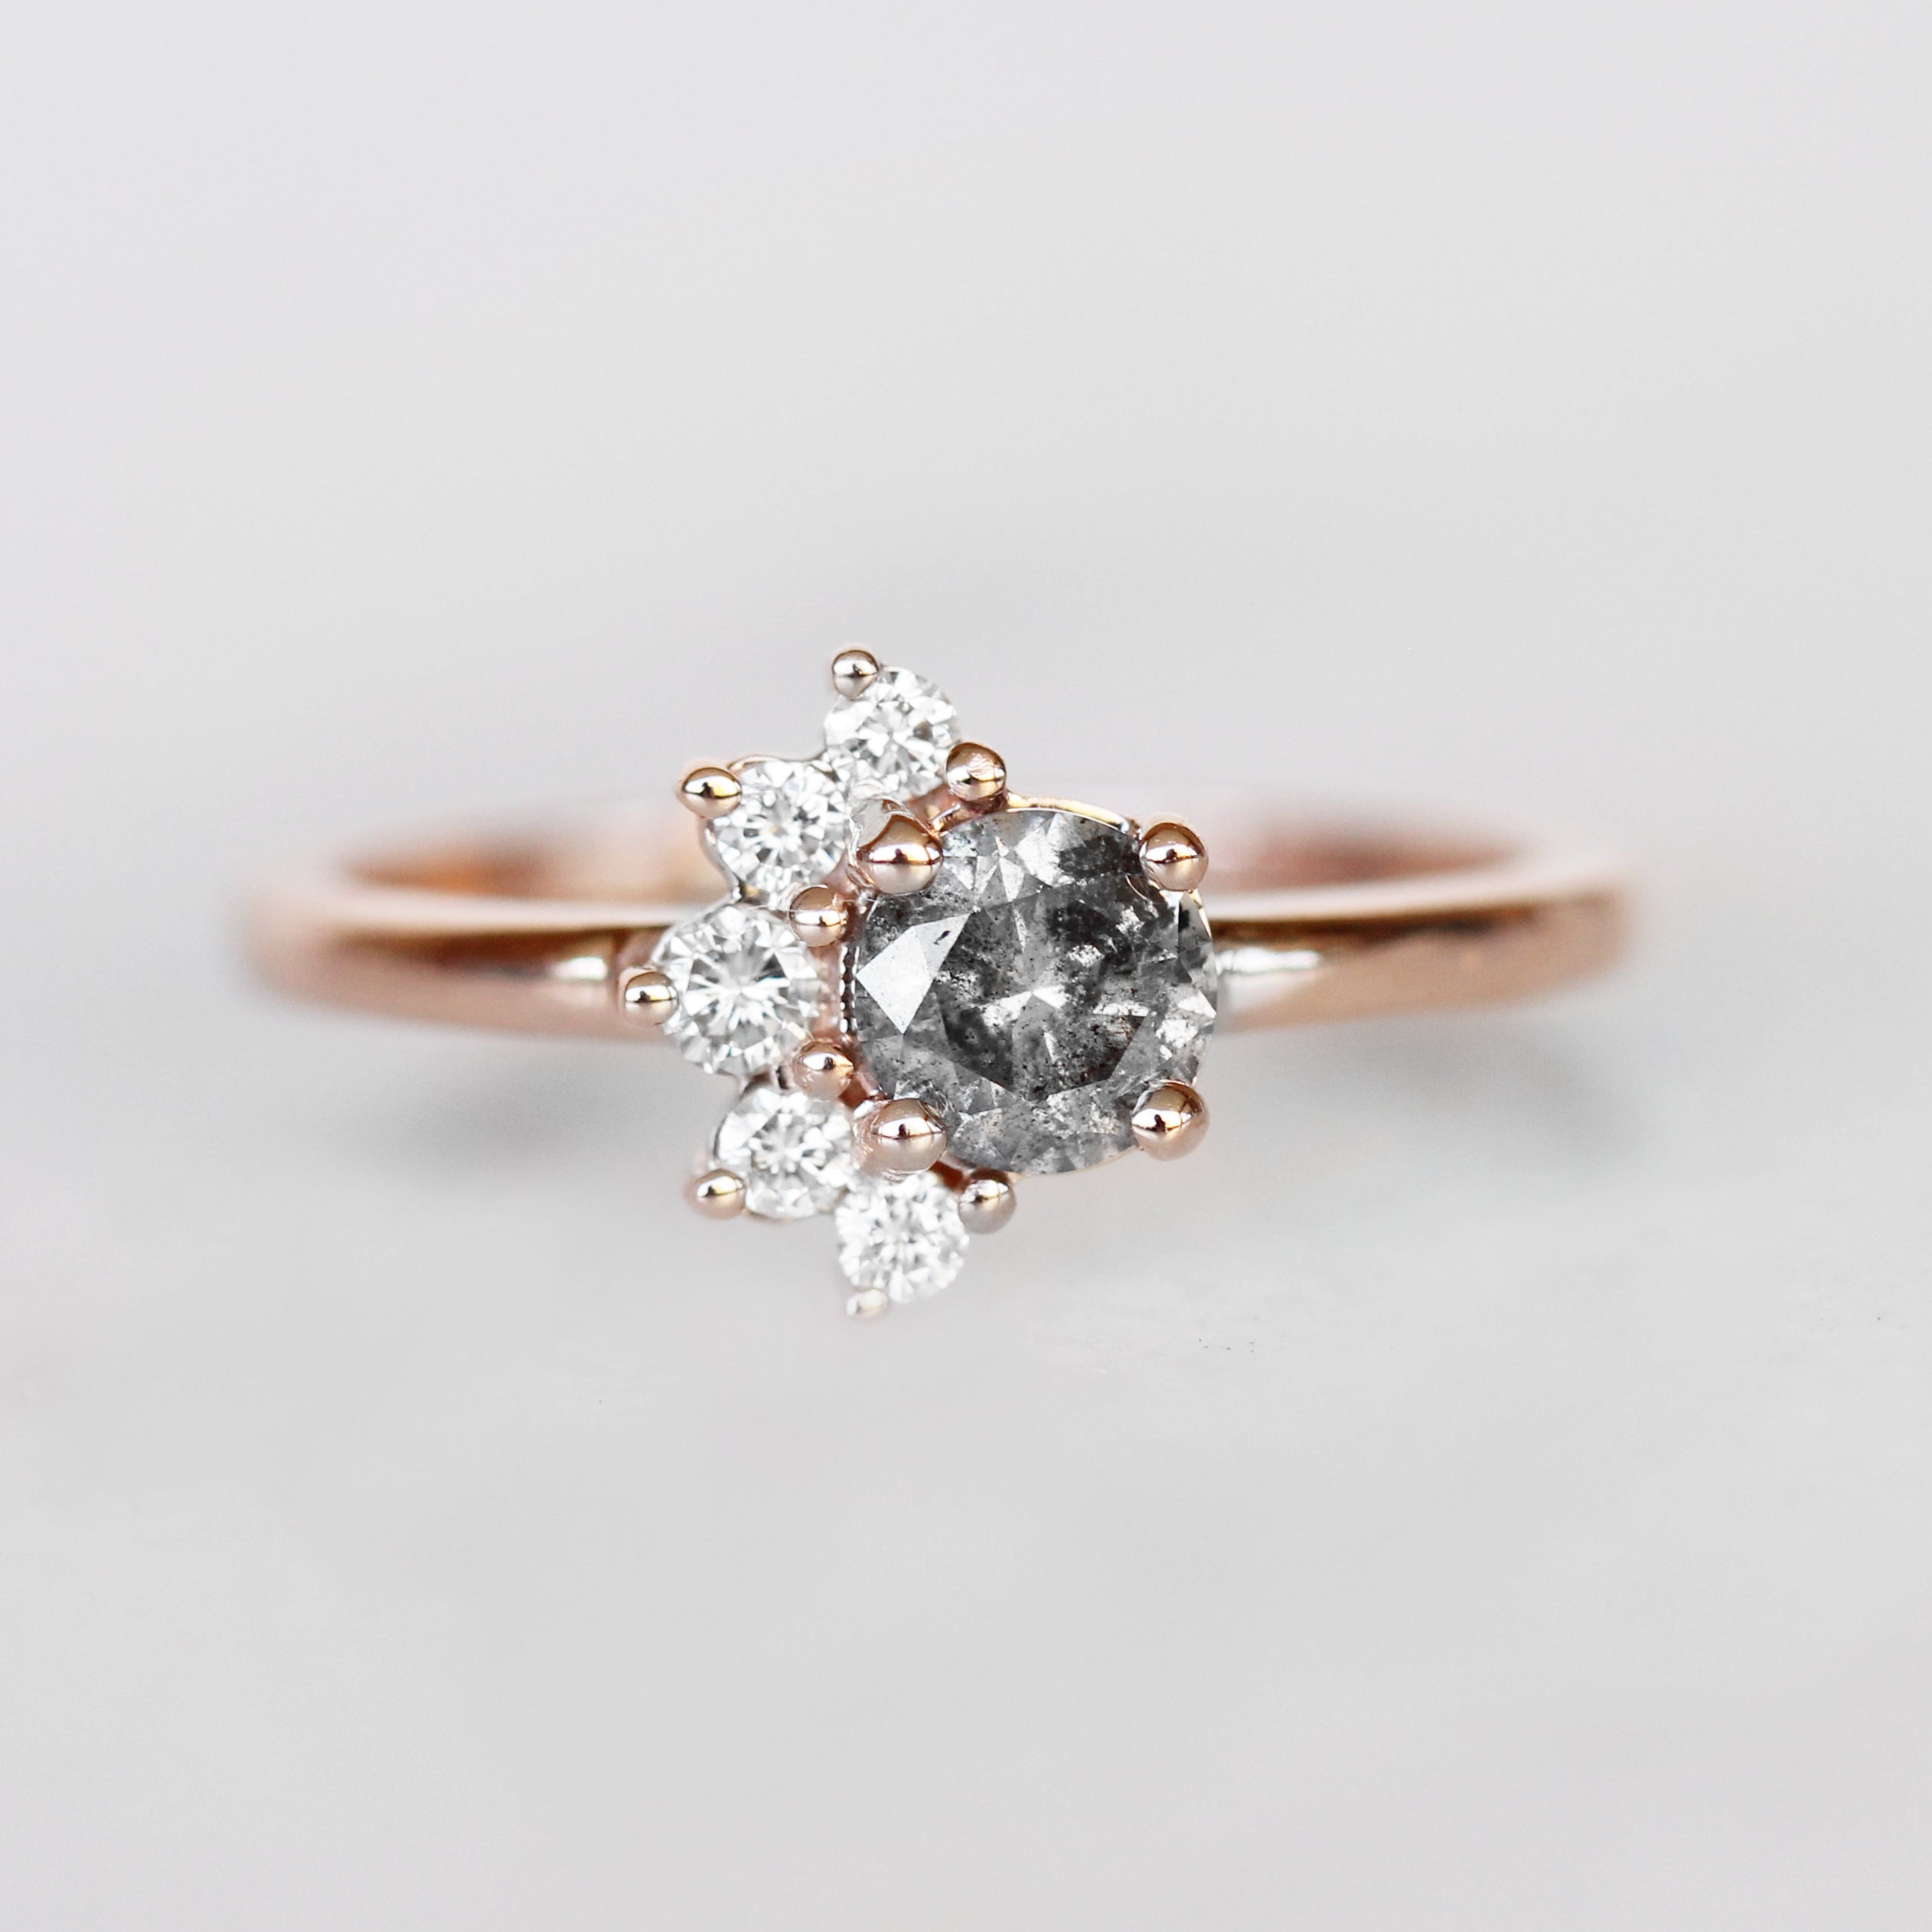 Drew Ring with a .51ct Celestial Diamond ® in 10k Rose Gold - Ready to Size and Ship - Celestial Diamonds ® by Midwinter Co.